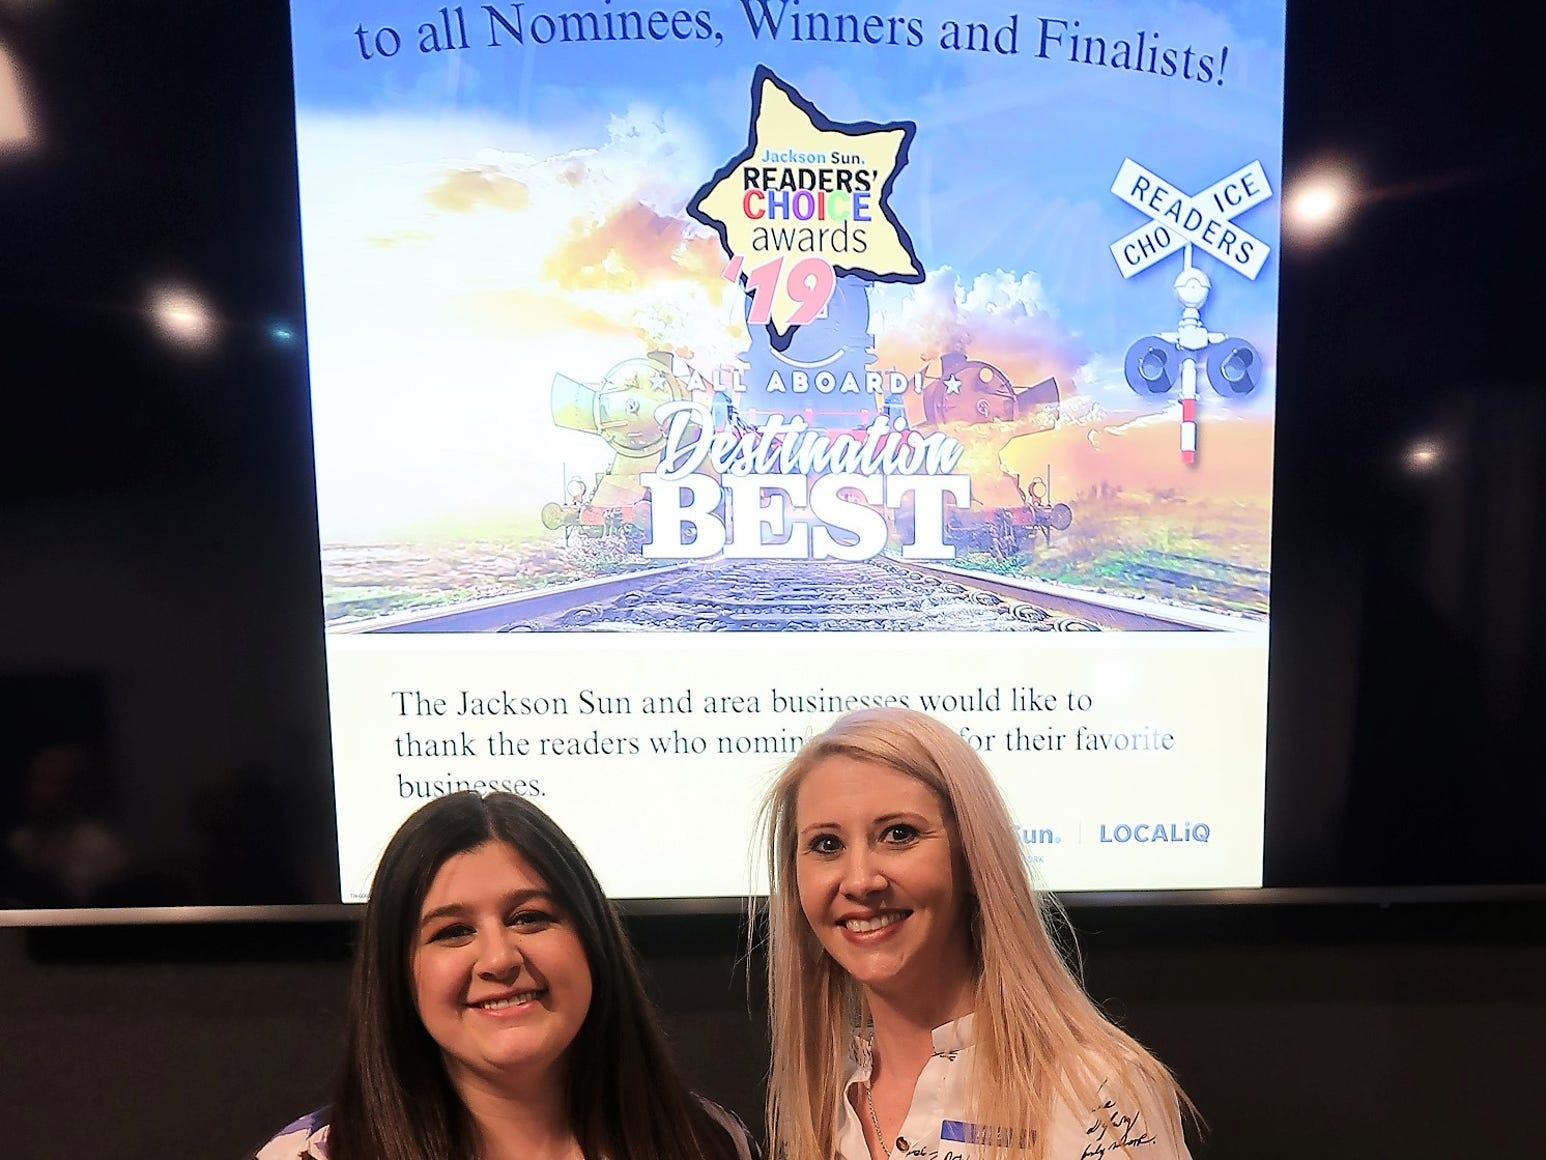 The 2019 Jackson Sun Readers Choice Awards was held at TheCo, Tuesday, March 26, 2019.